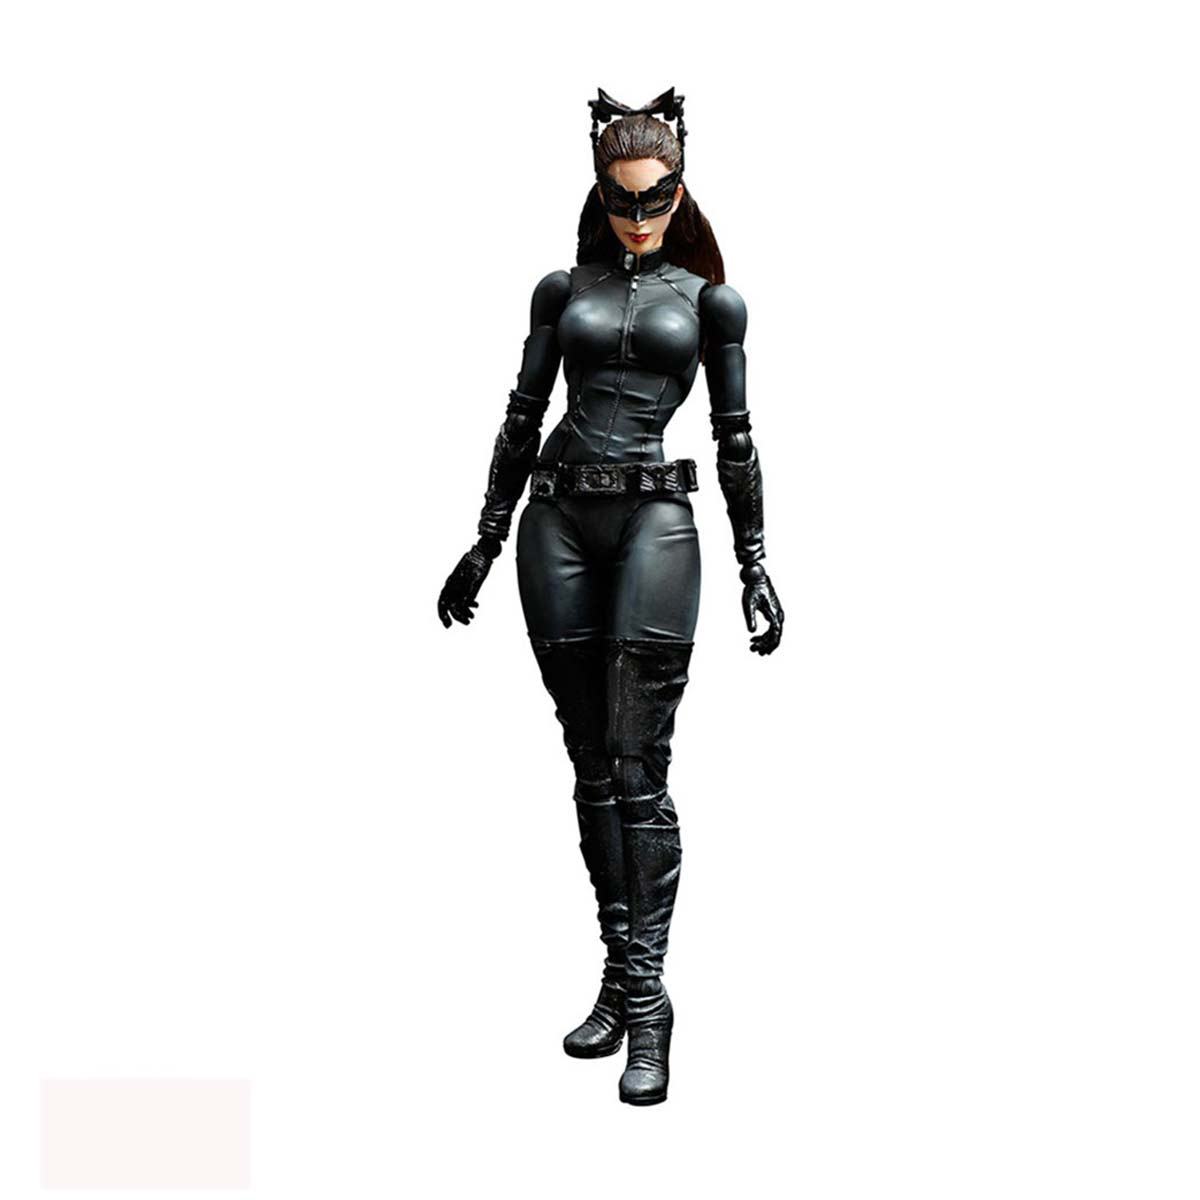 Boneco (Action Figure) Catwoman - Play Arts Kai